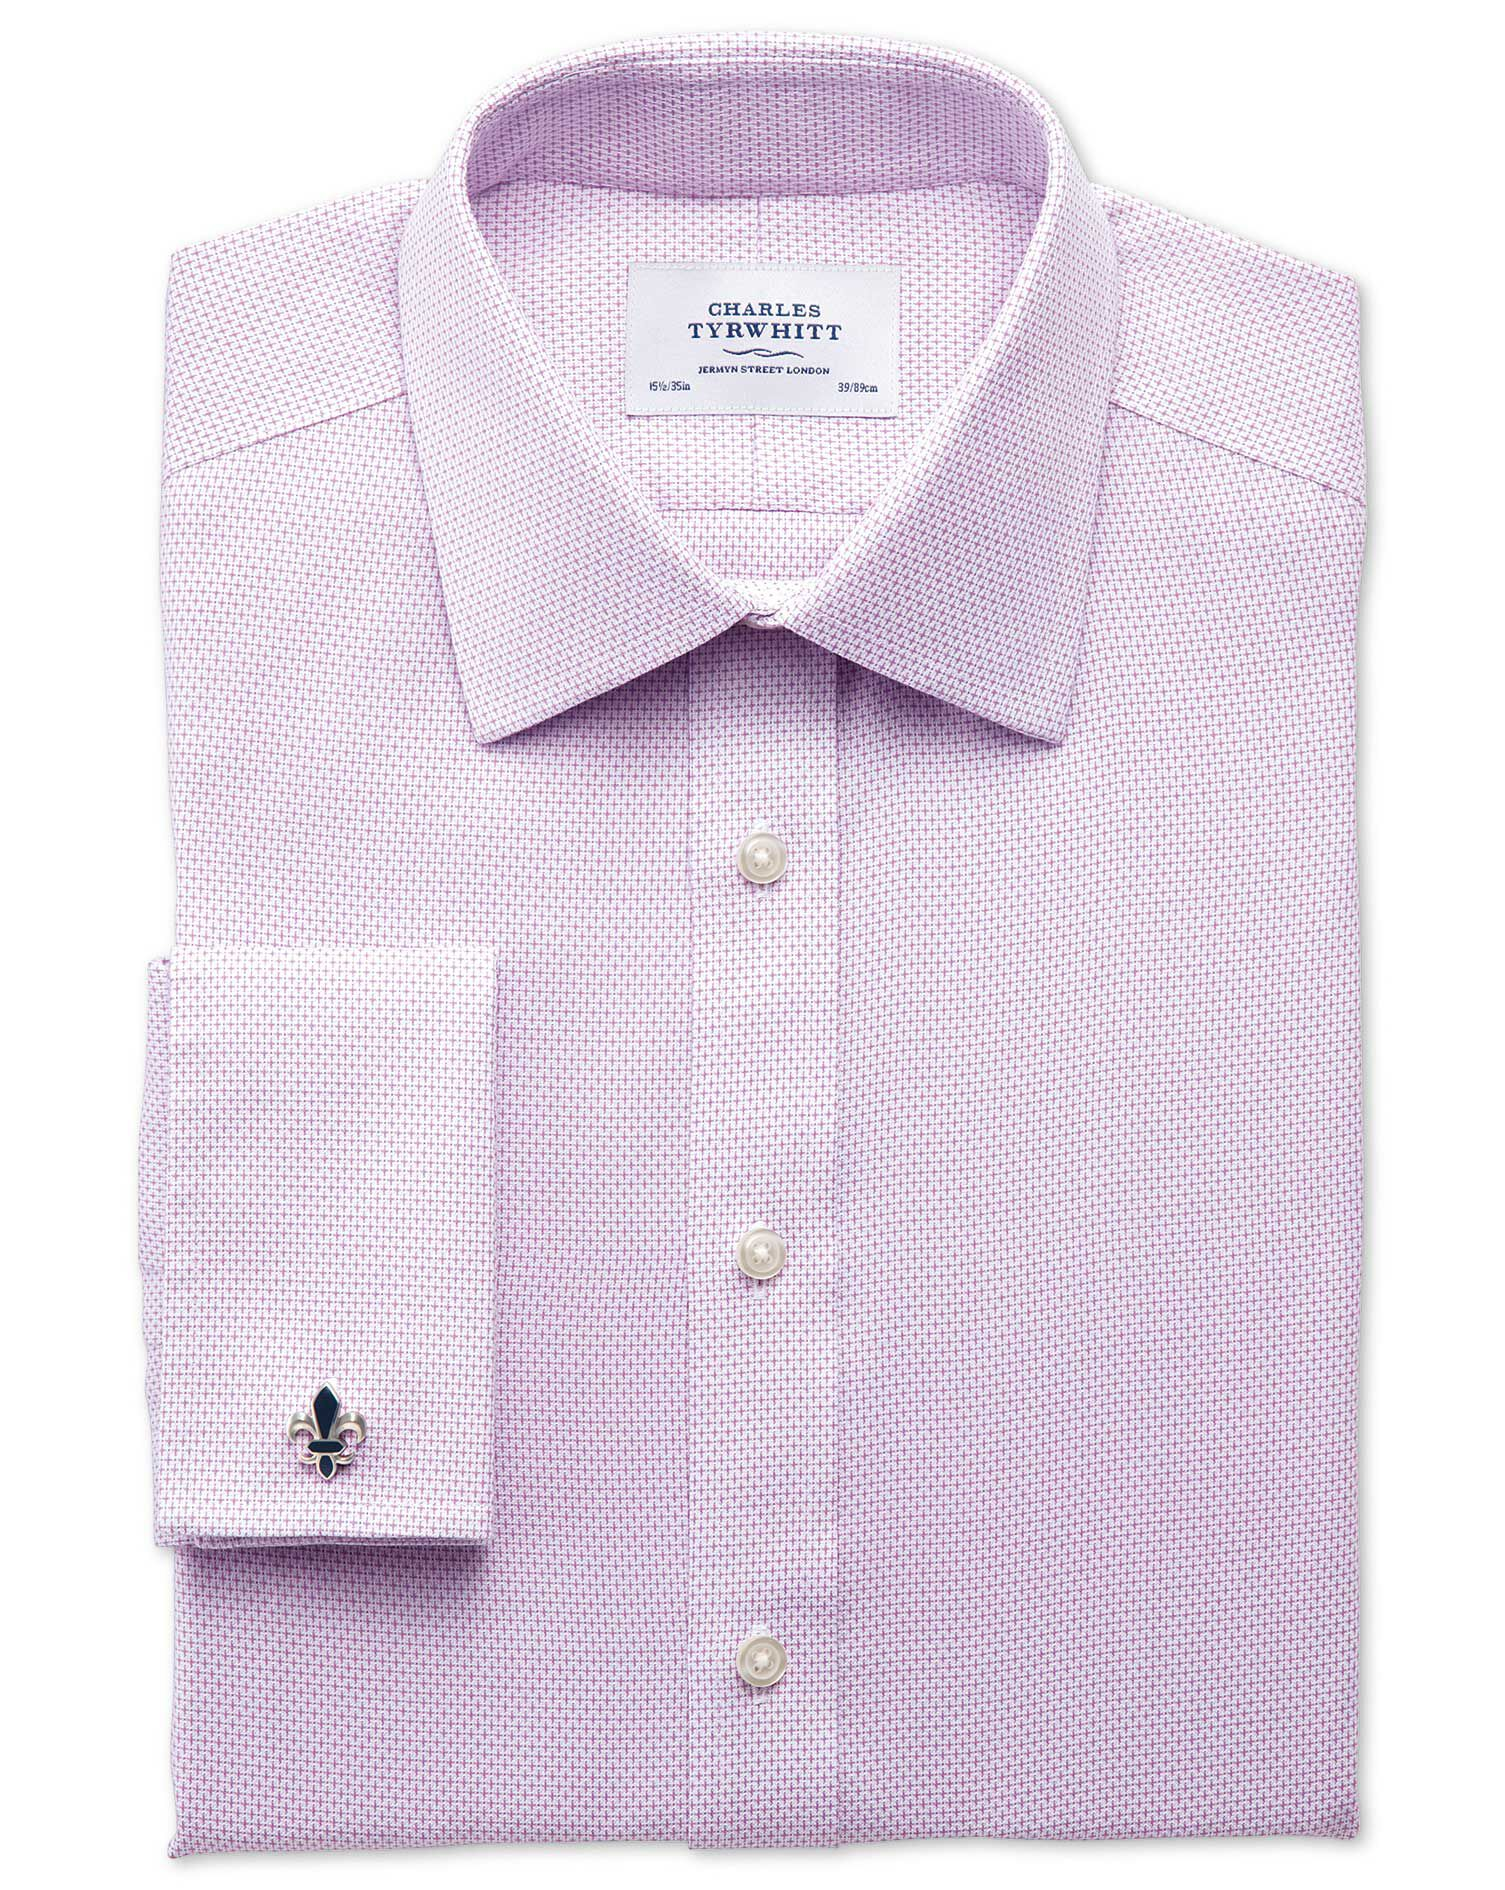 Slim Fit Non-Iron Imperial Weave Lilac Cotton Formal Shirt Single Cuff Size 15/34 by Charles Tyrwhit